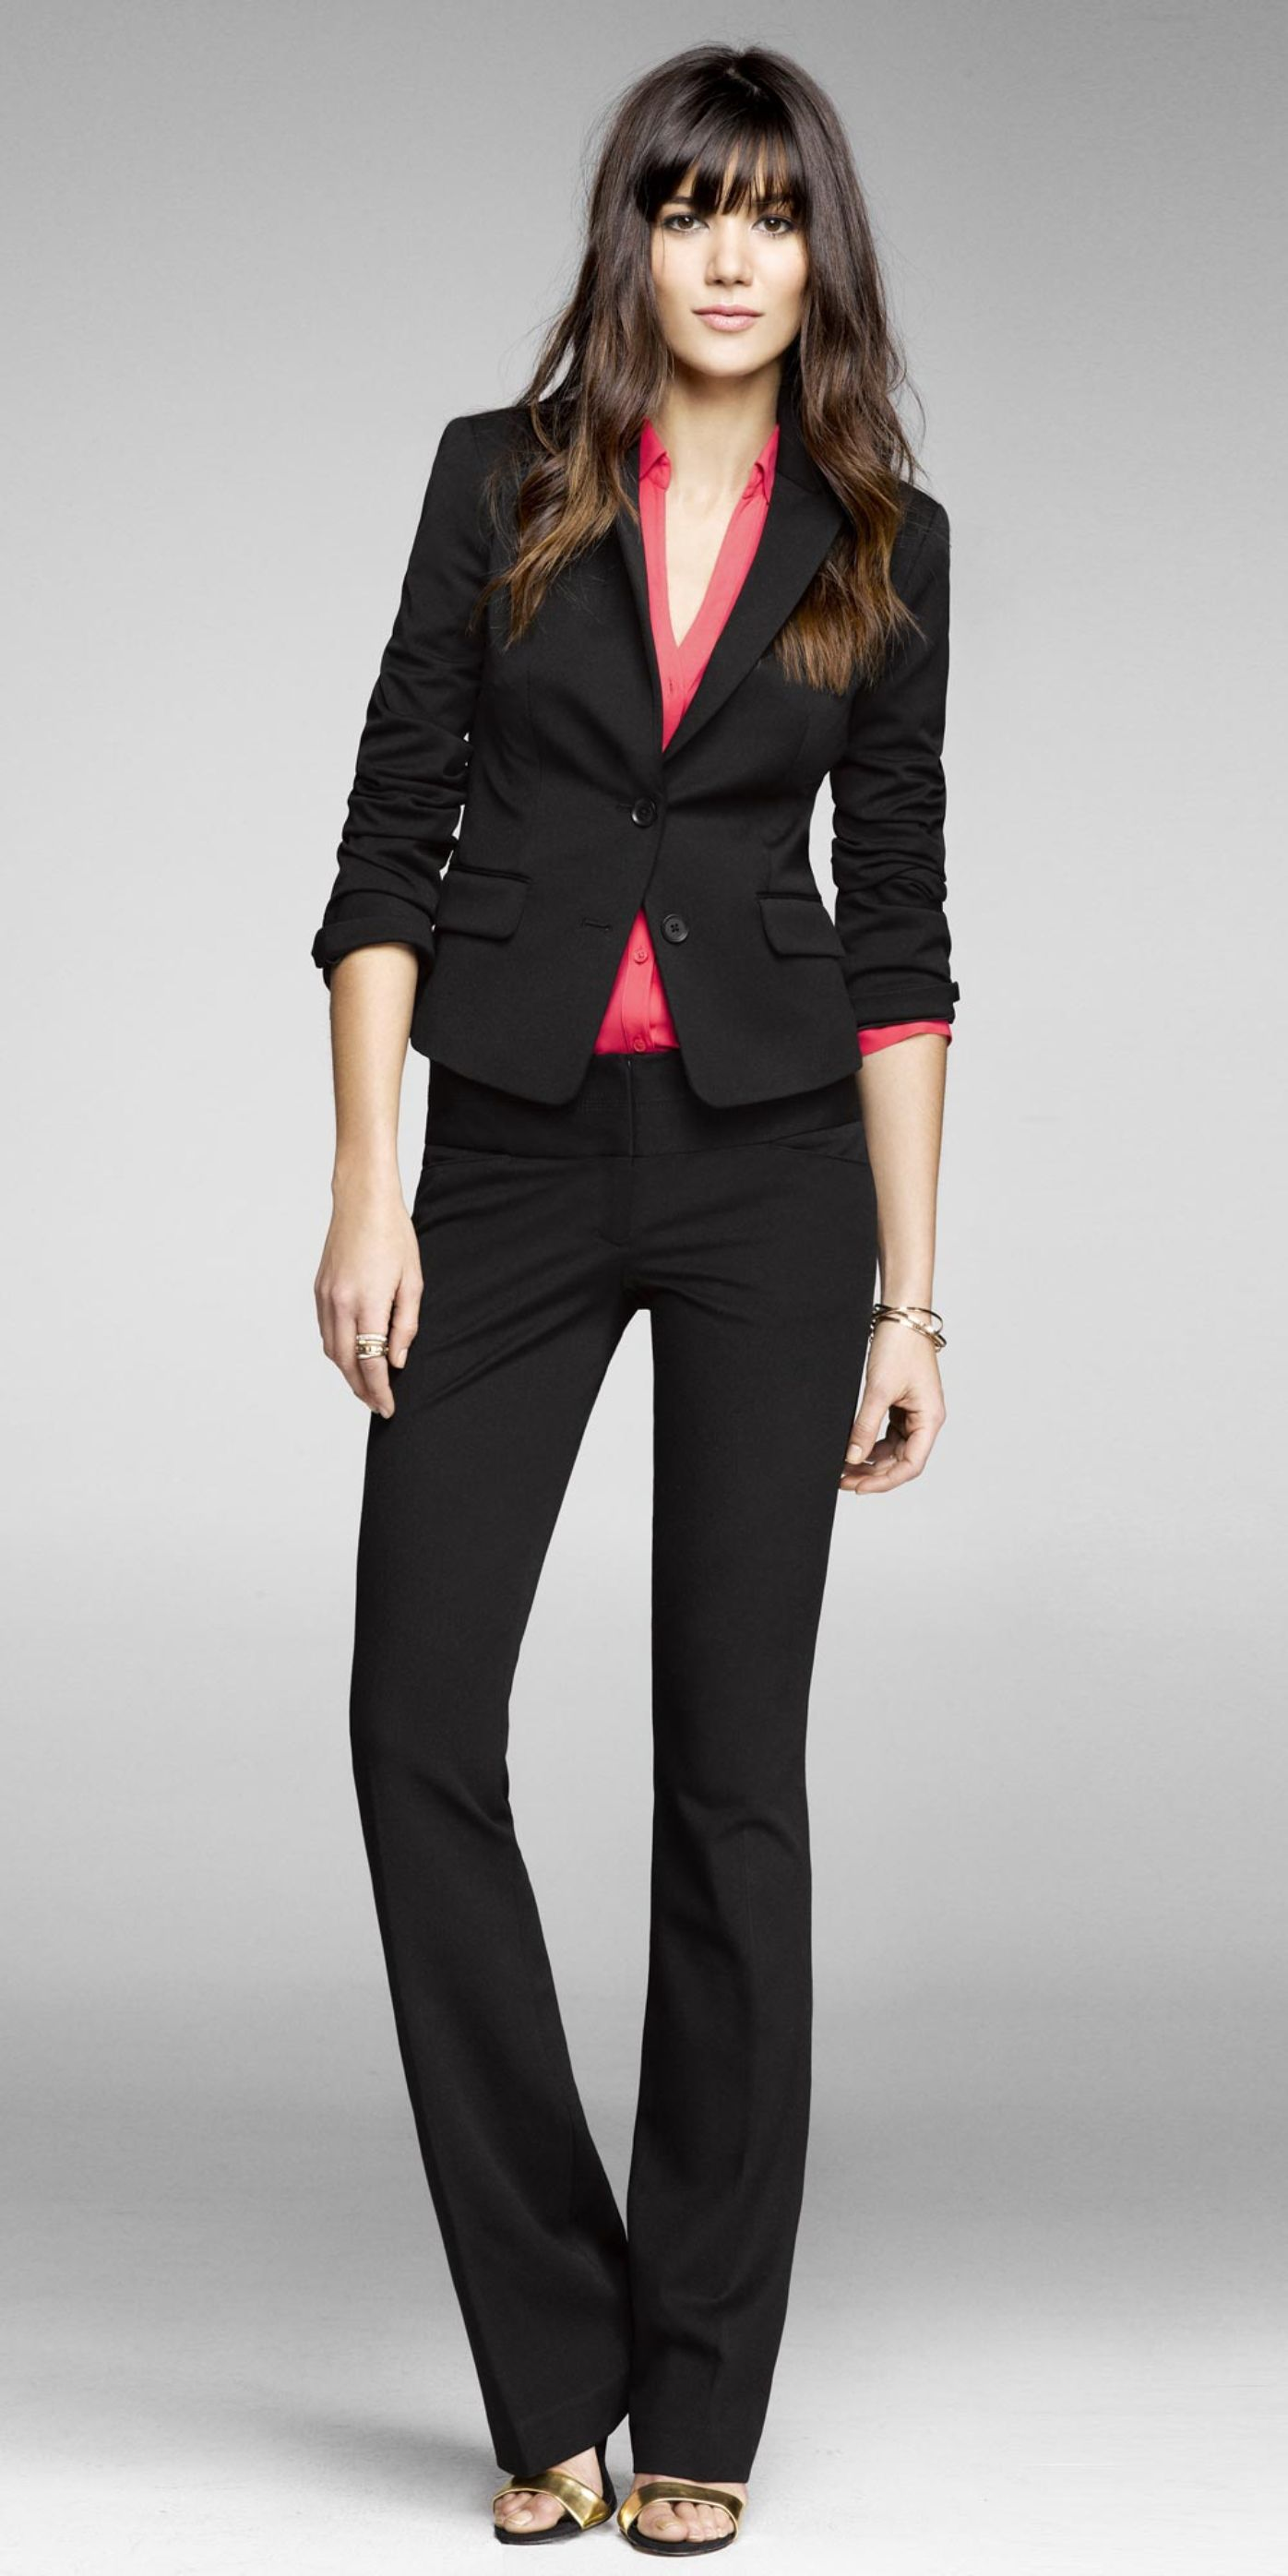 studio stretch peplum jacket and editor pant  express